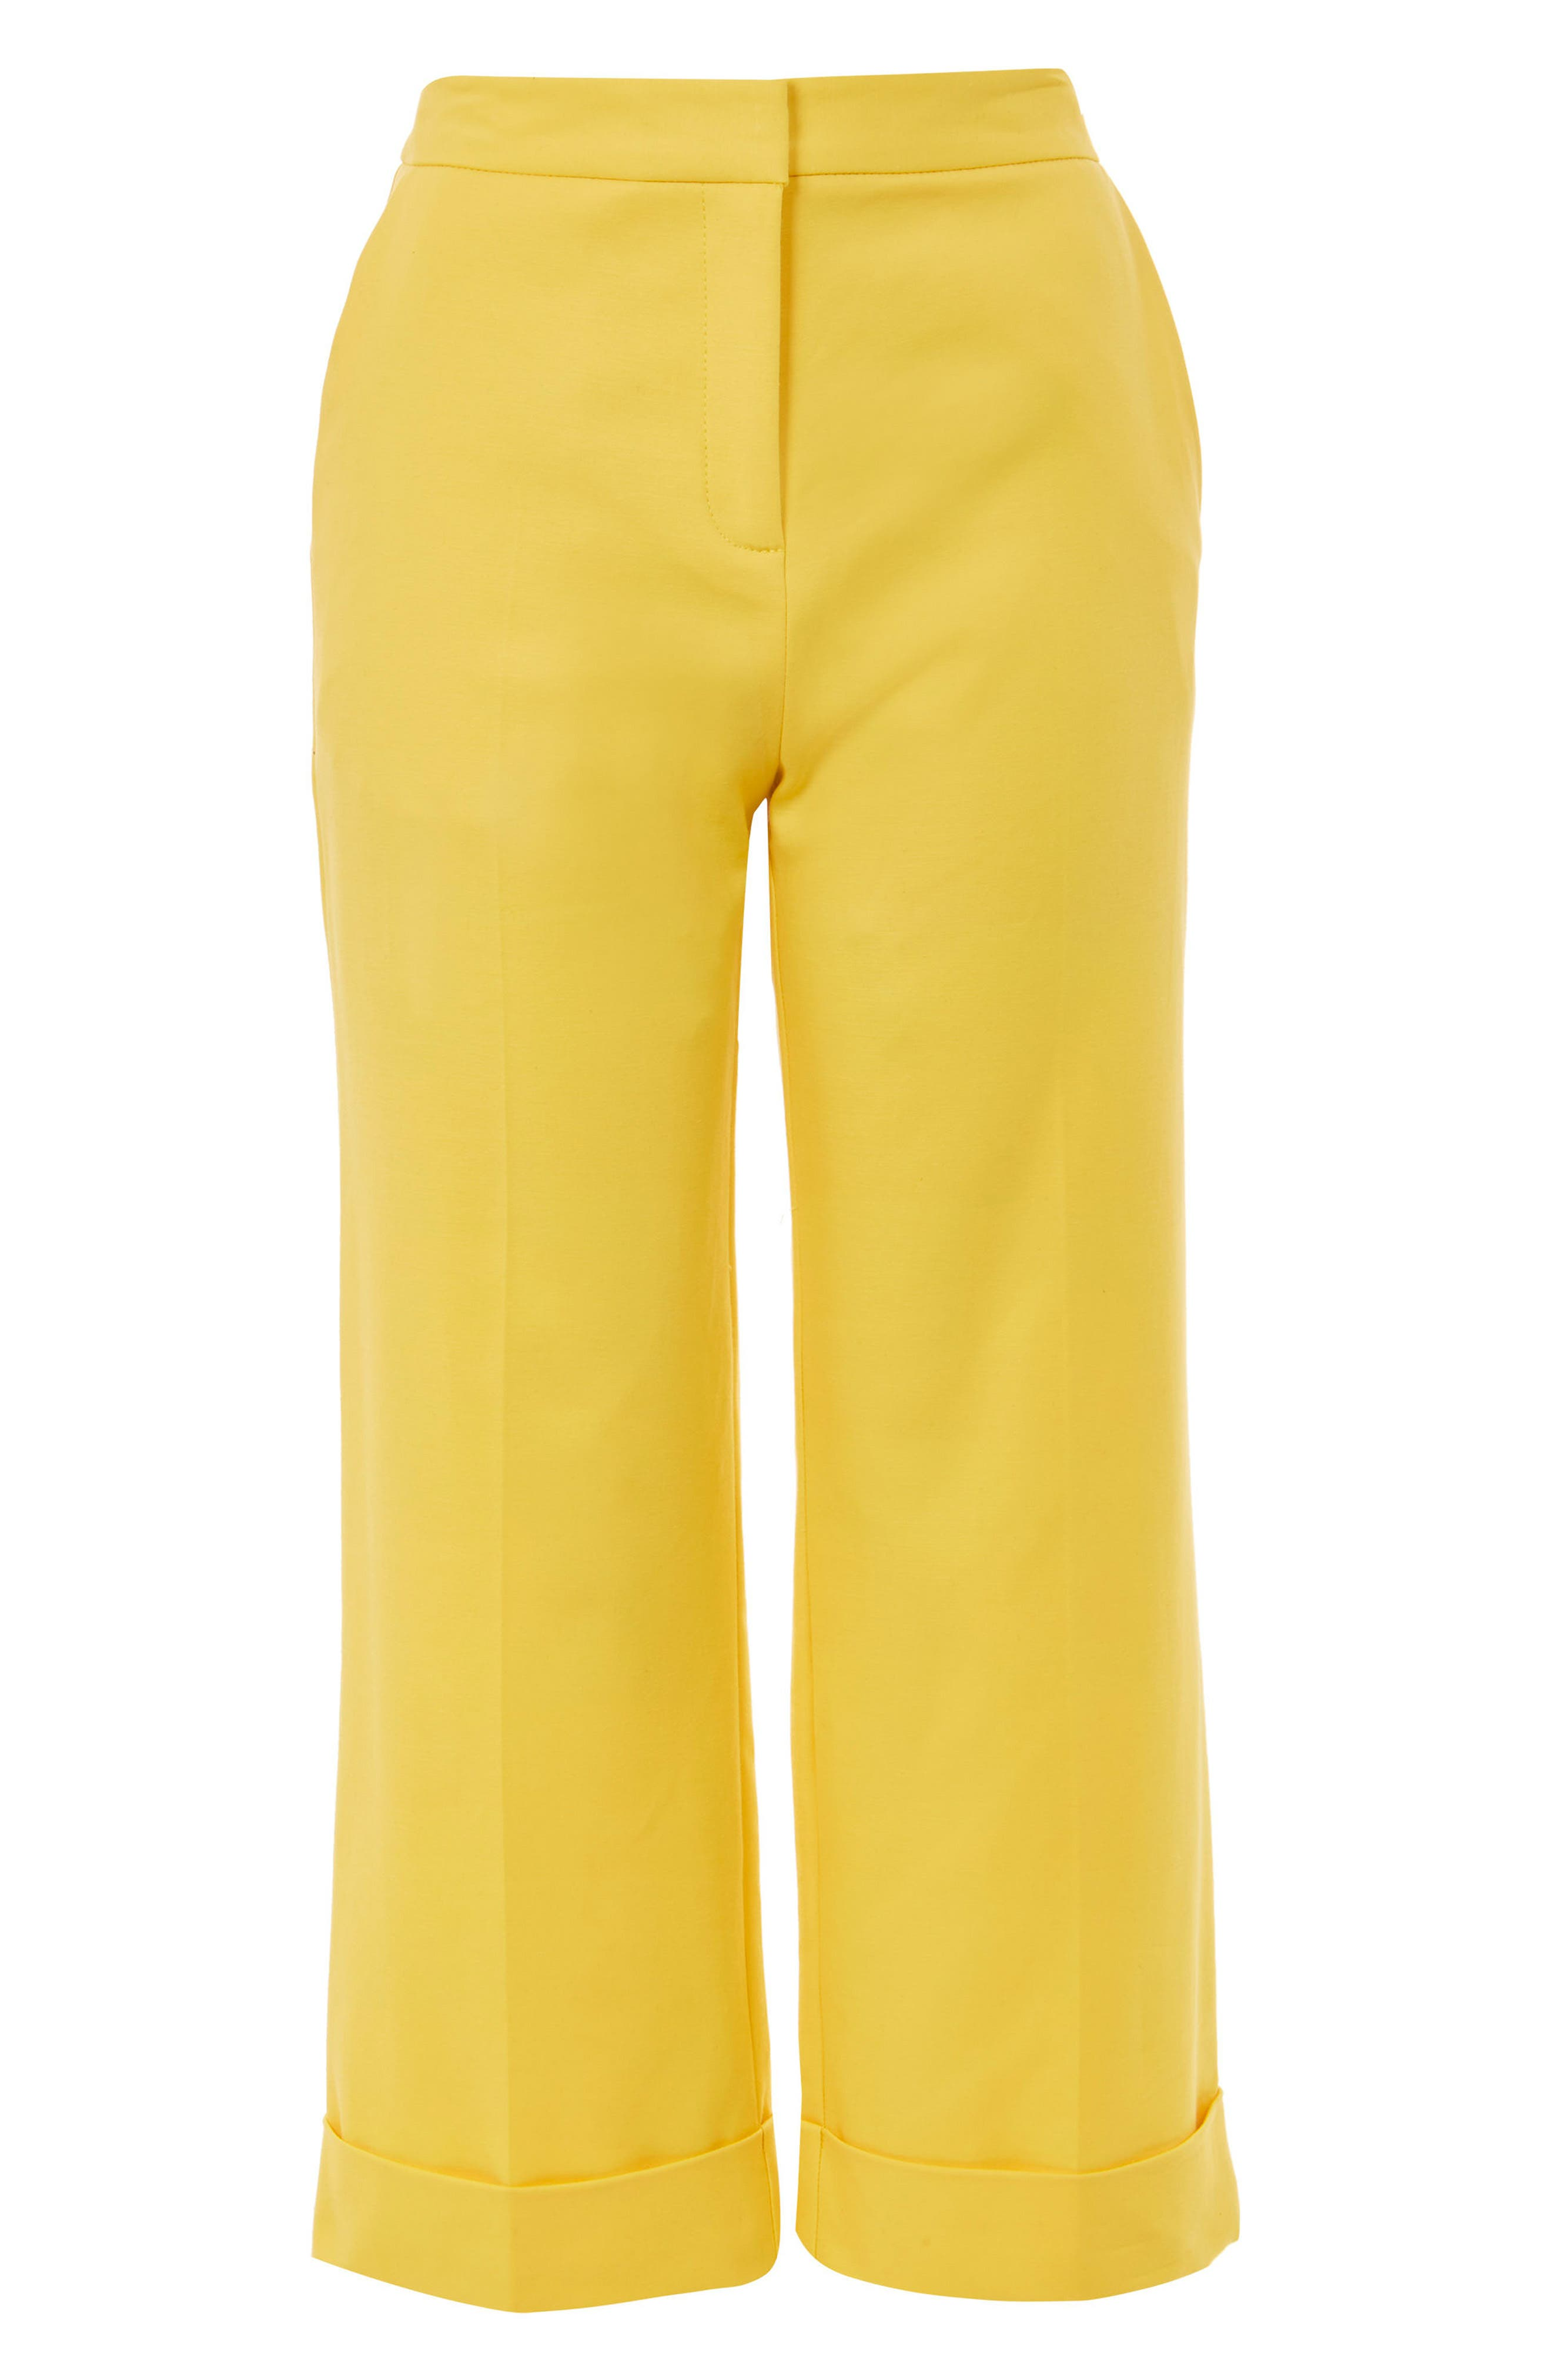 Milly Crop Suit Trousers,                             Alternate thumbnail 4, color,                             Yellow